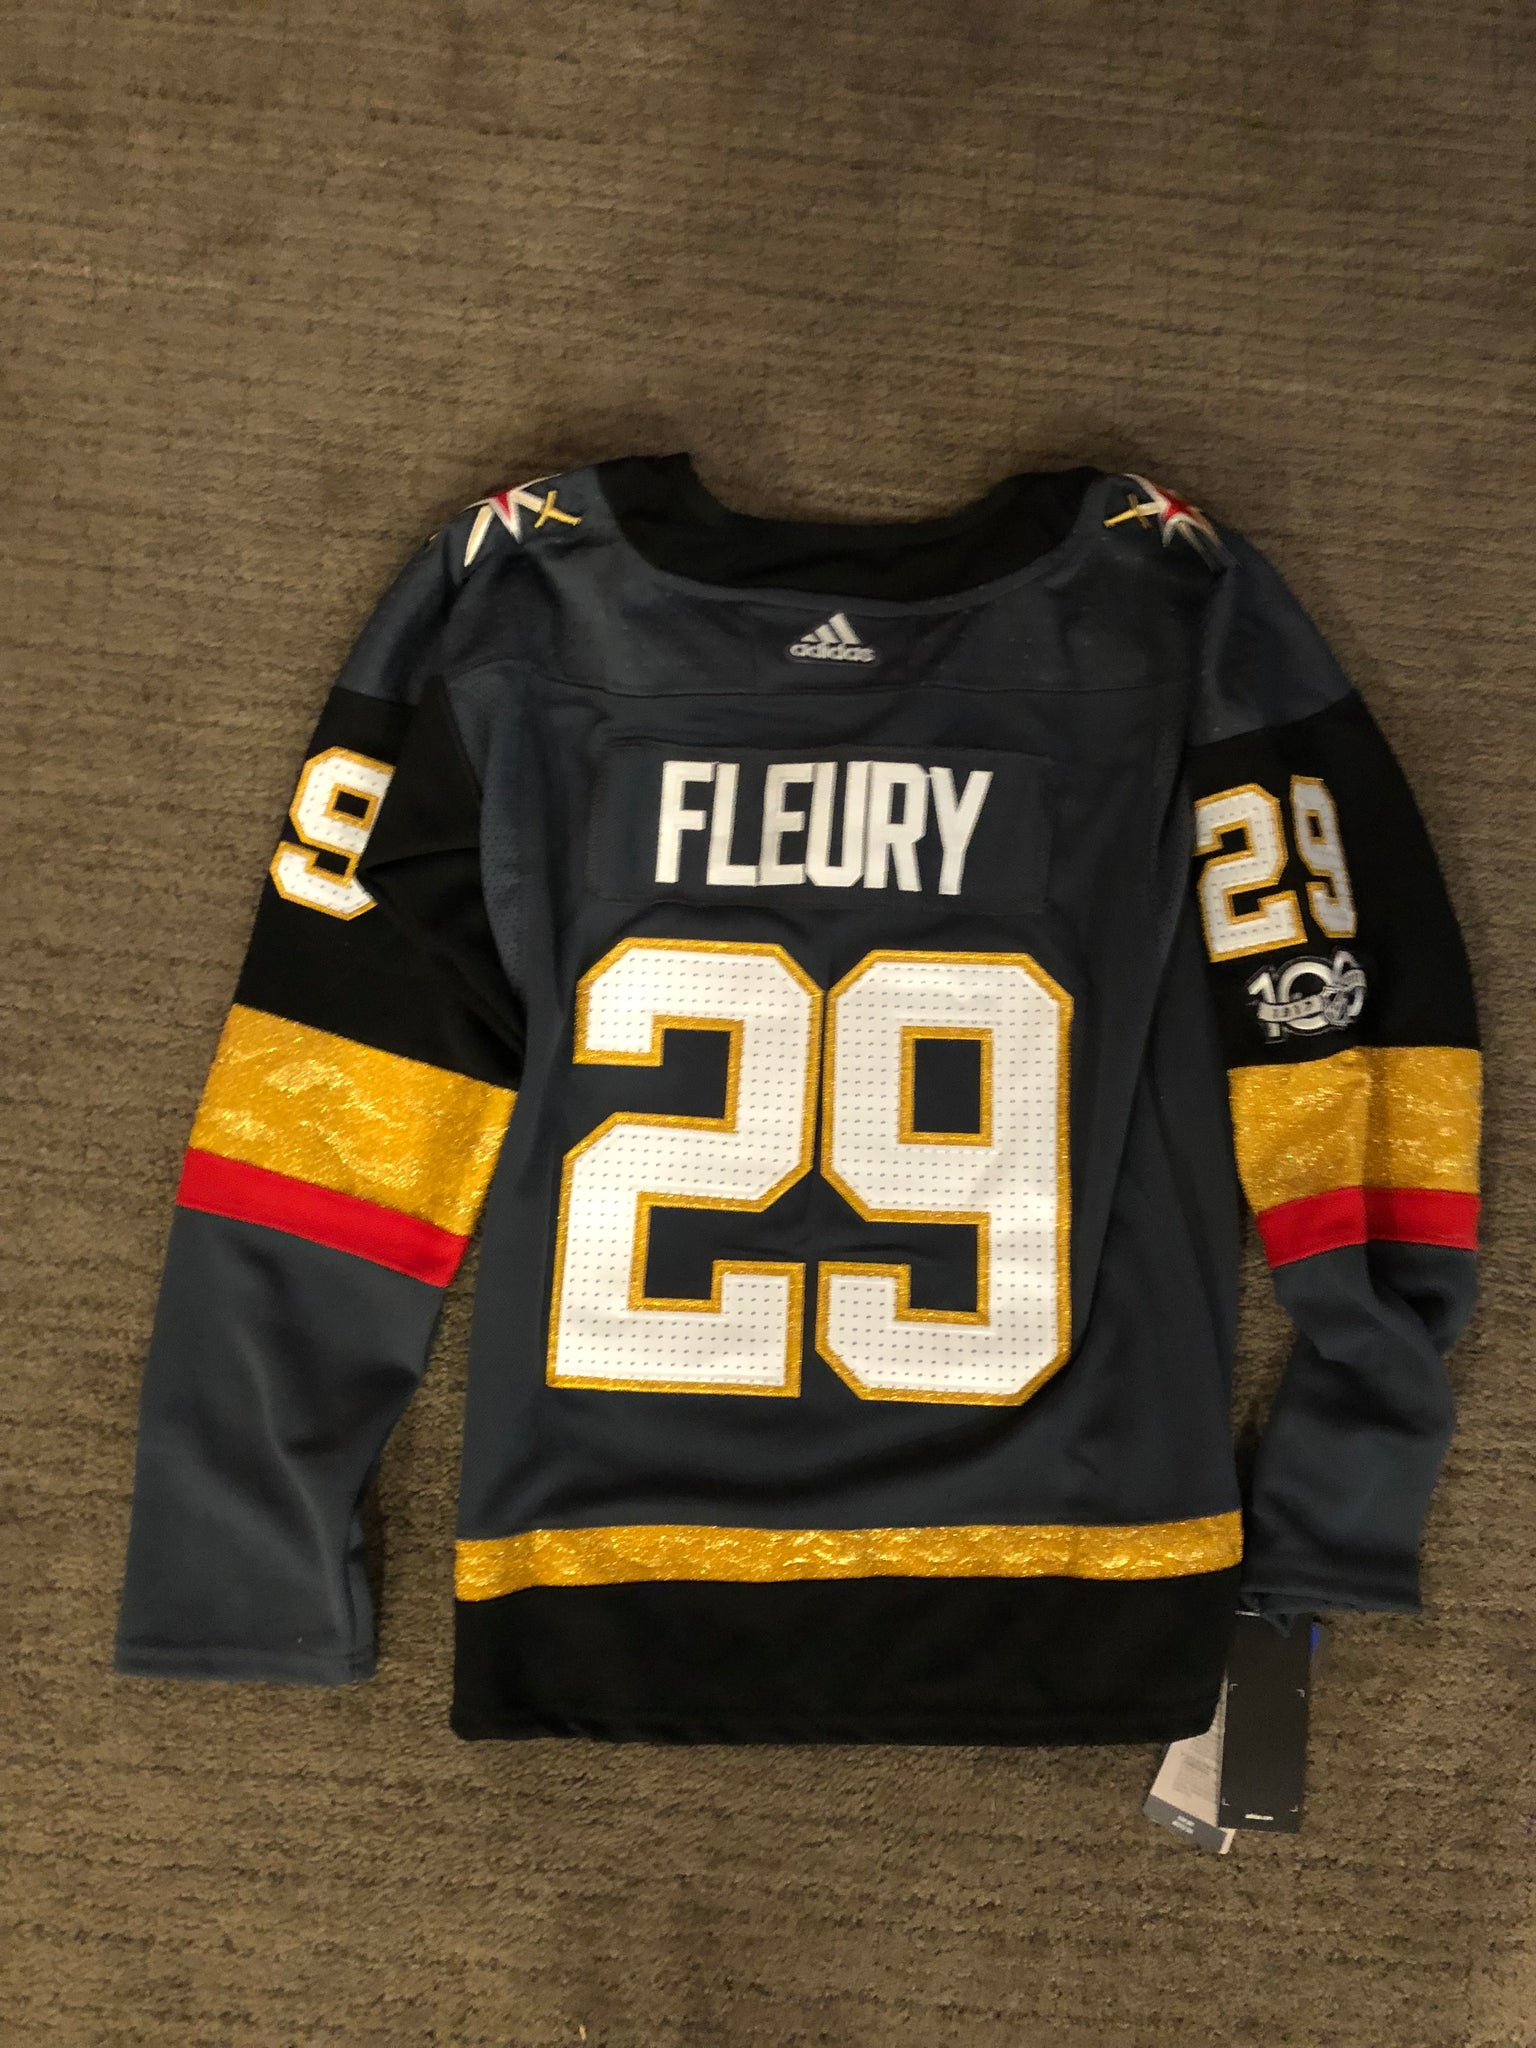 ... WOMEN S Vegas Golden Knights FLEURY White or Grey Jerseys with PATCHES  ... 758e8754e2